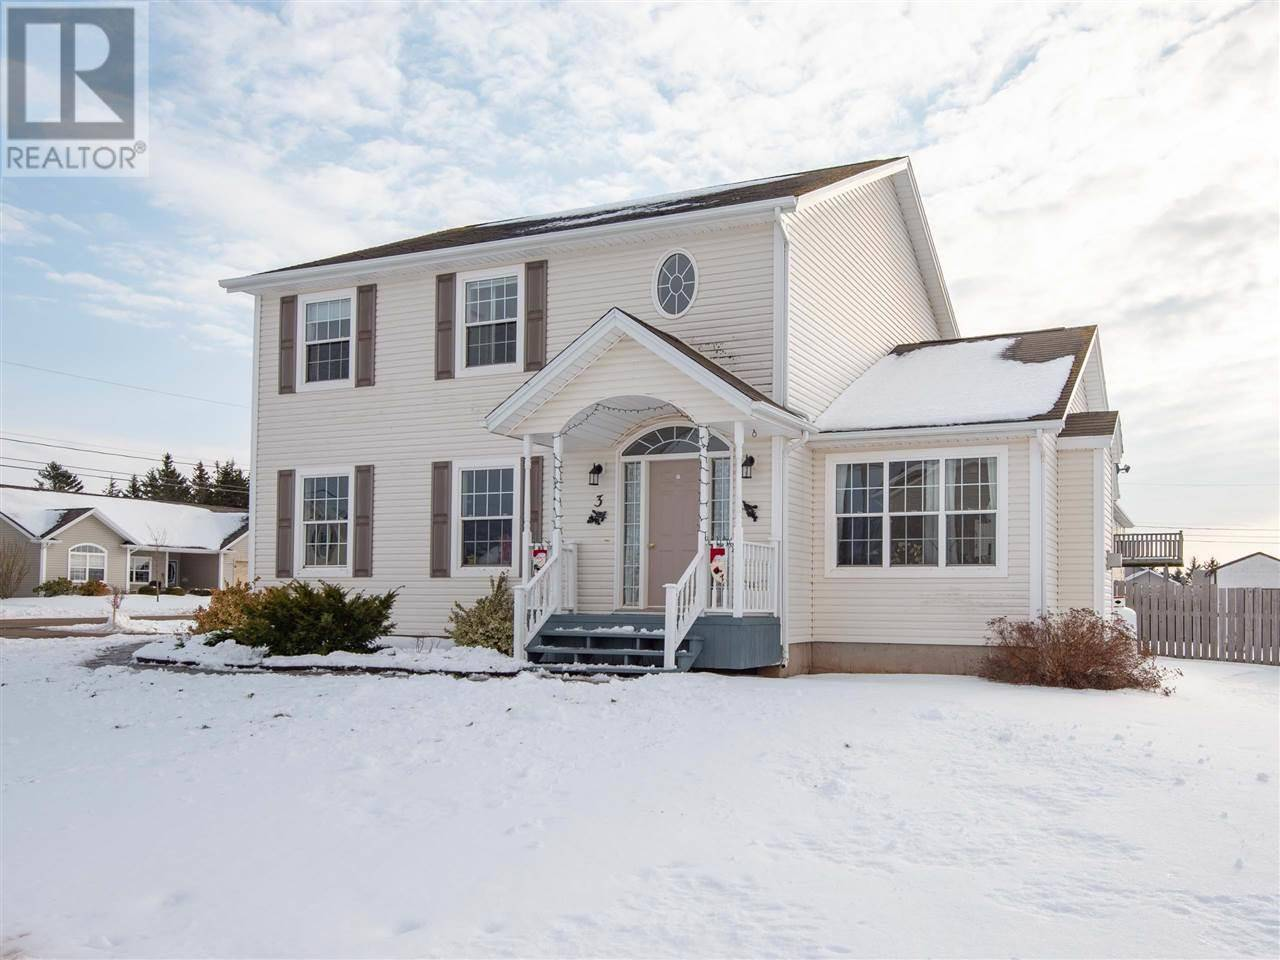 House for sale at 3 Macphee St Charlottetown Prince Edward Island - MLS: 201927550